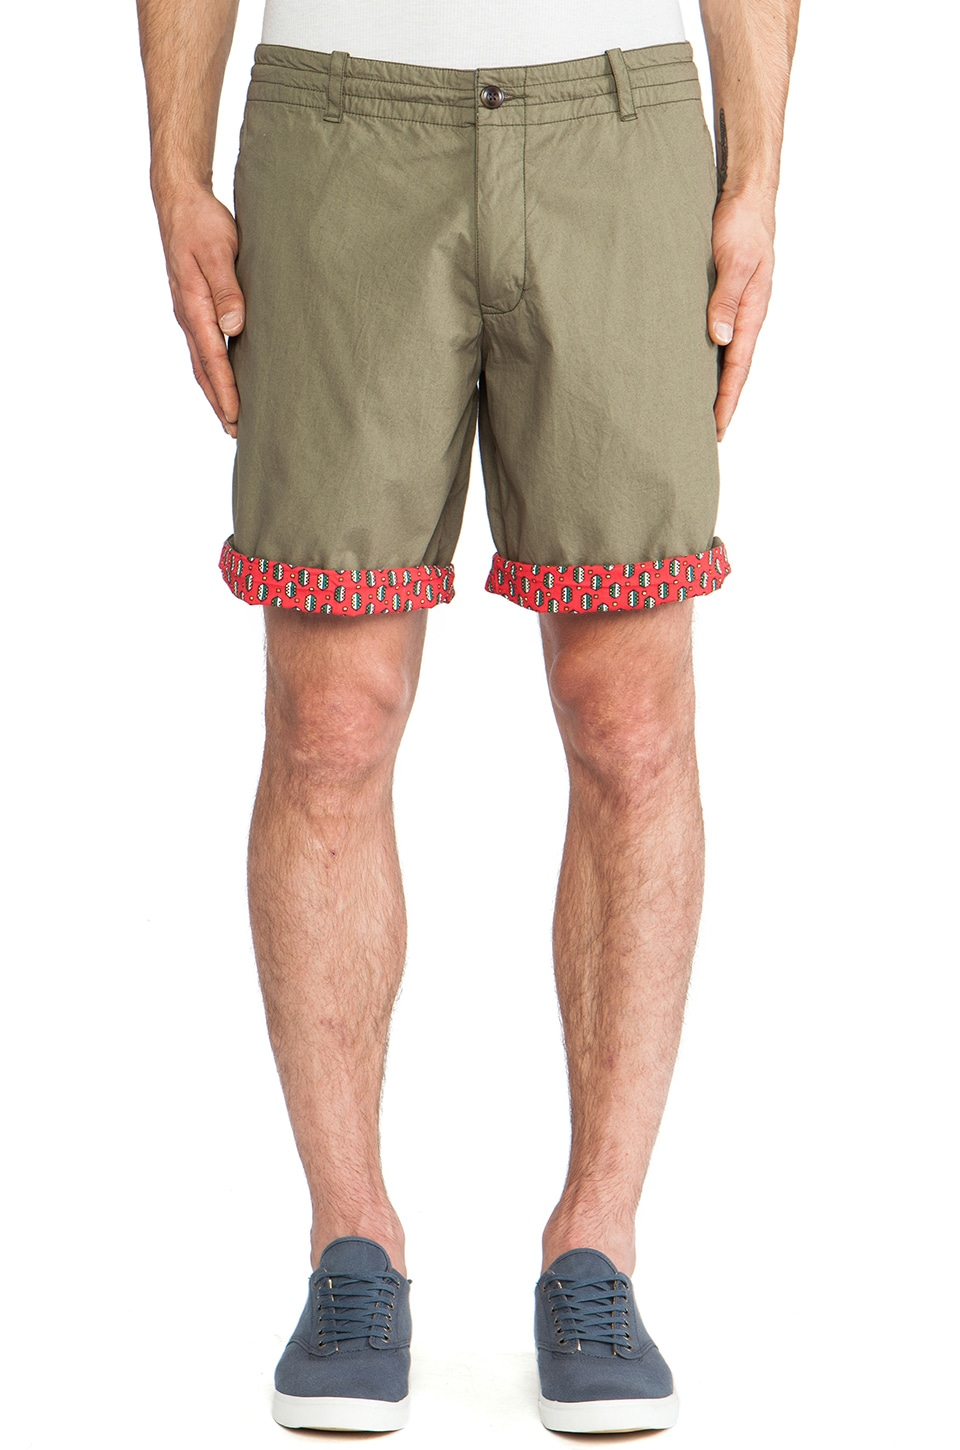 Burkman Bros. Drawcord Short in Martini & Olive